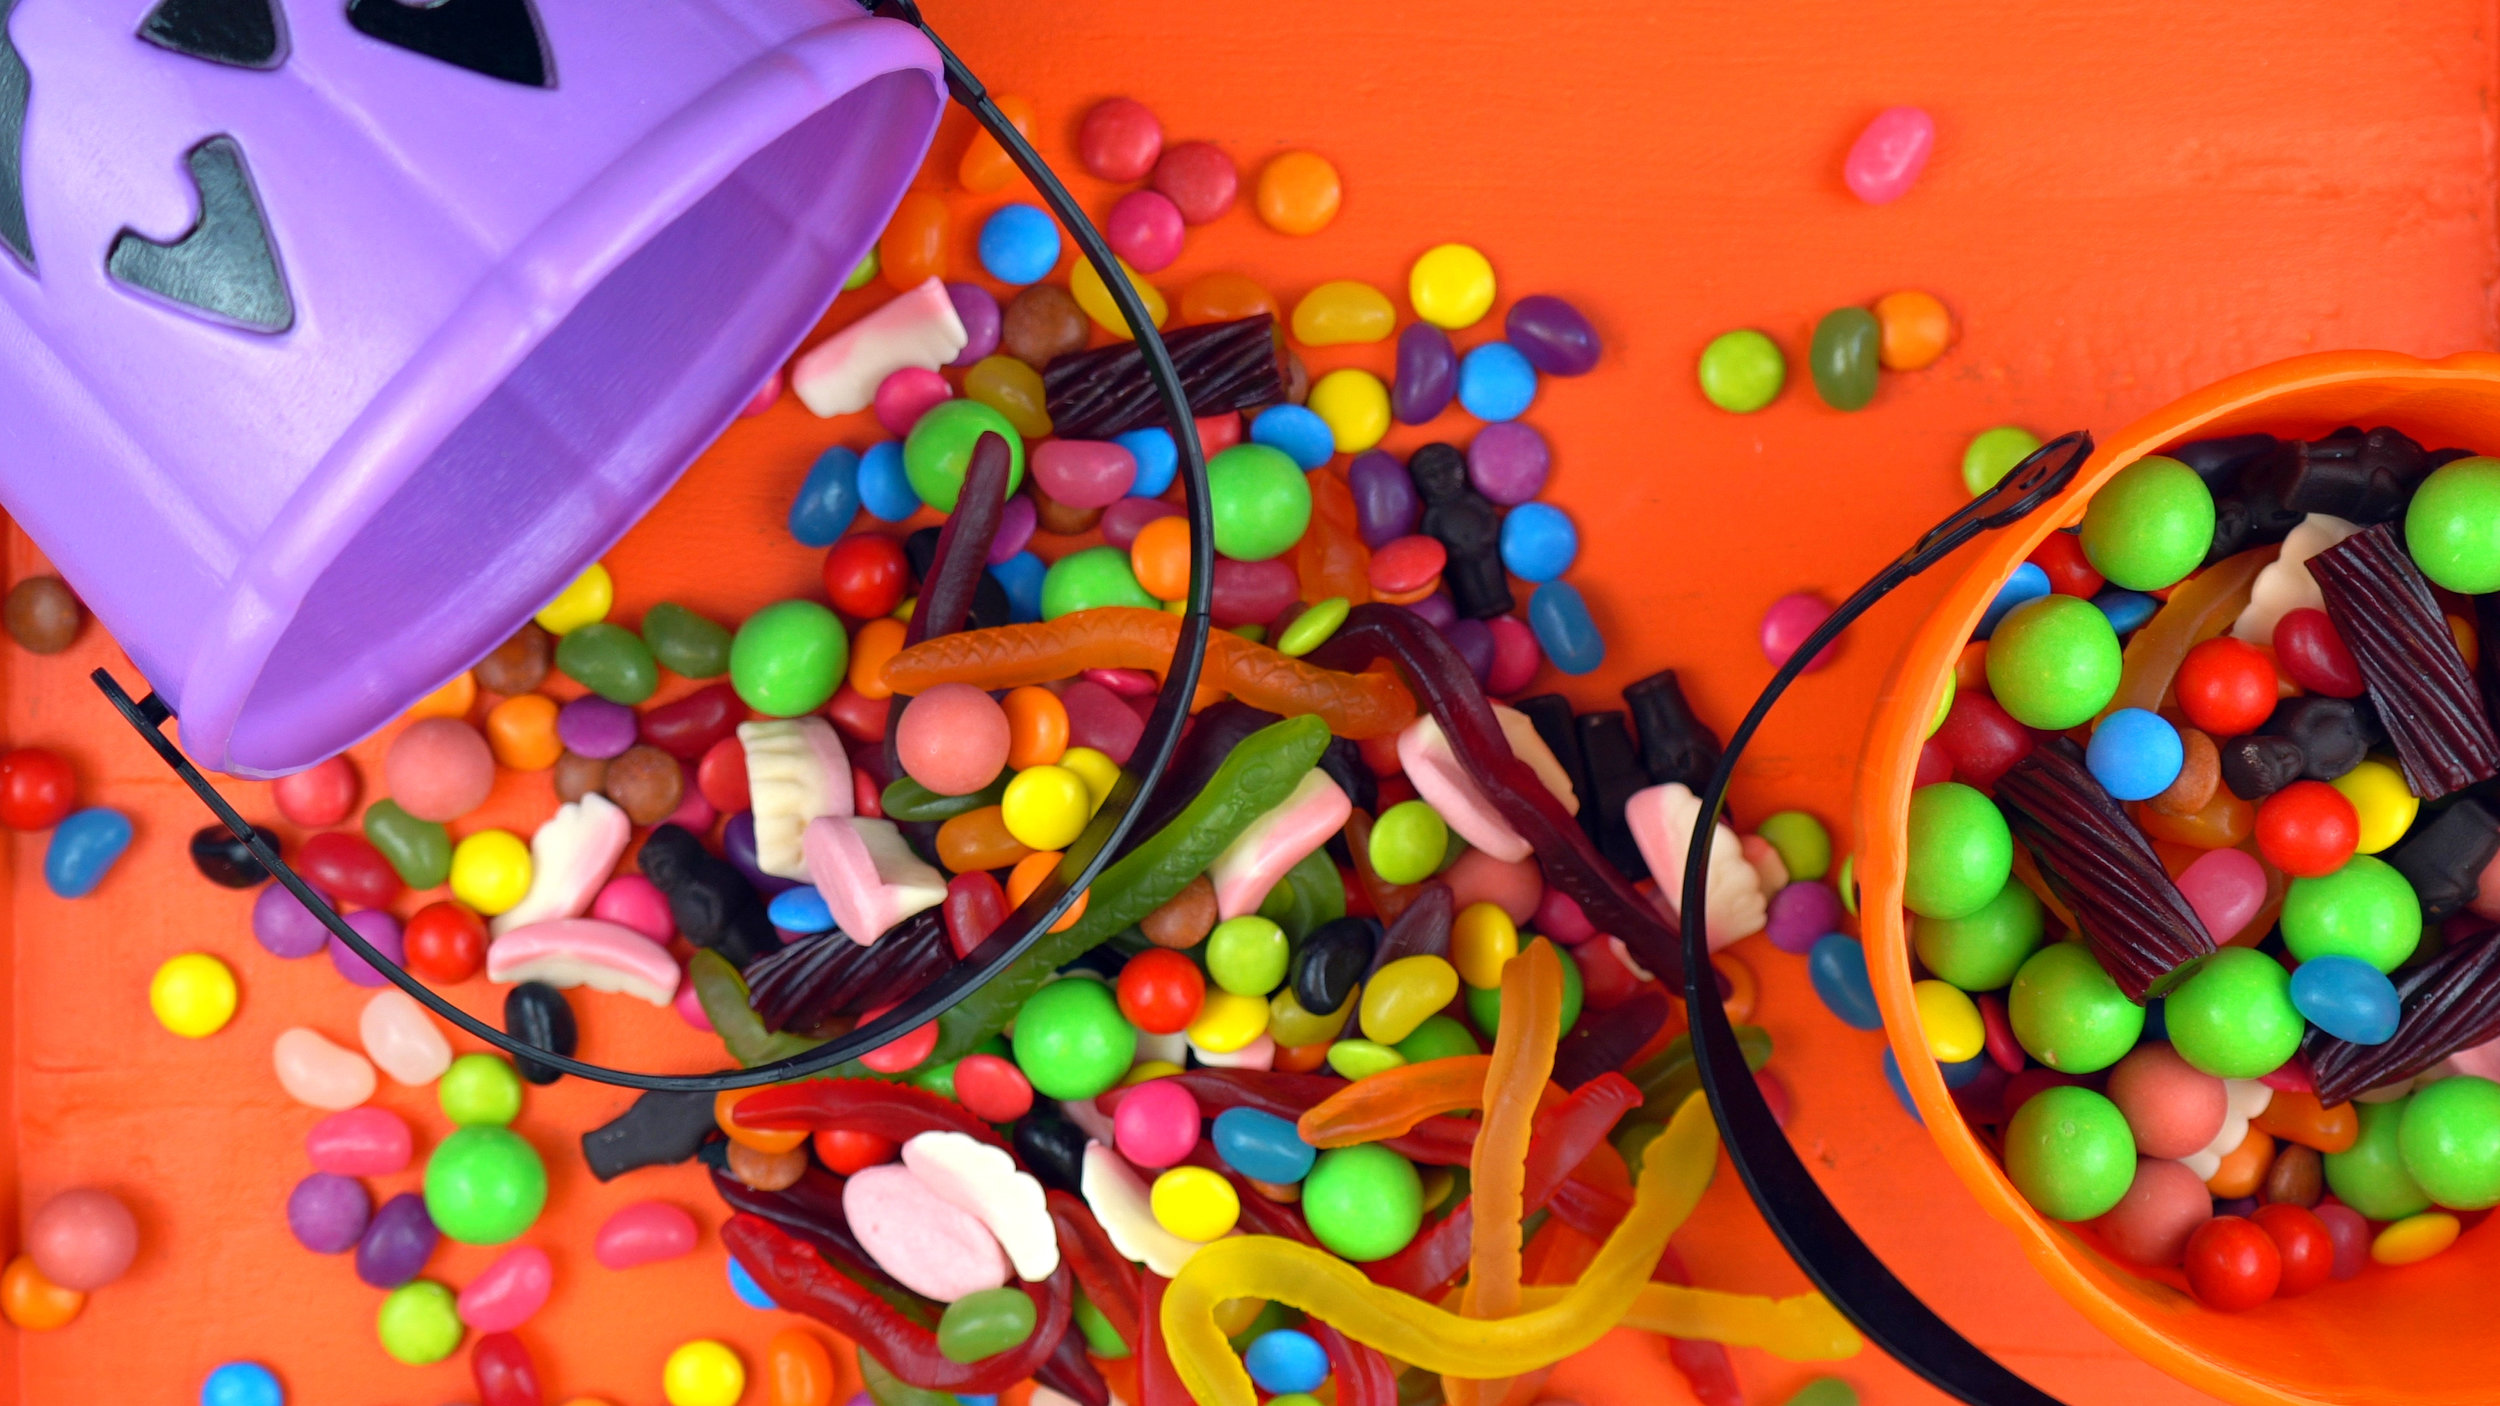 6. don't pick through the candy bowl looking for your favourite sweet! - Think of the germs, people!